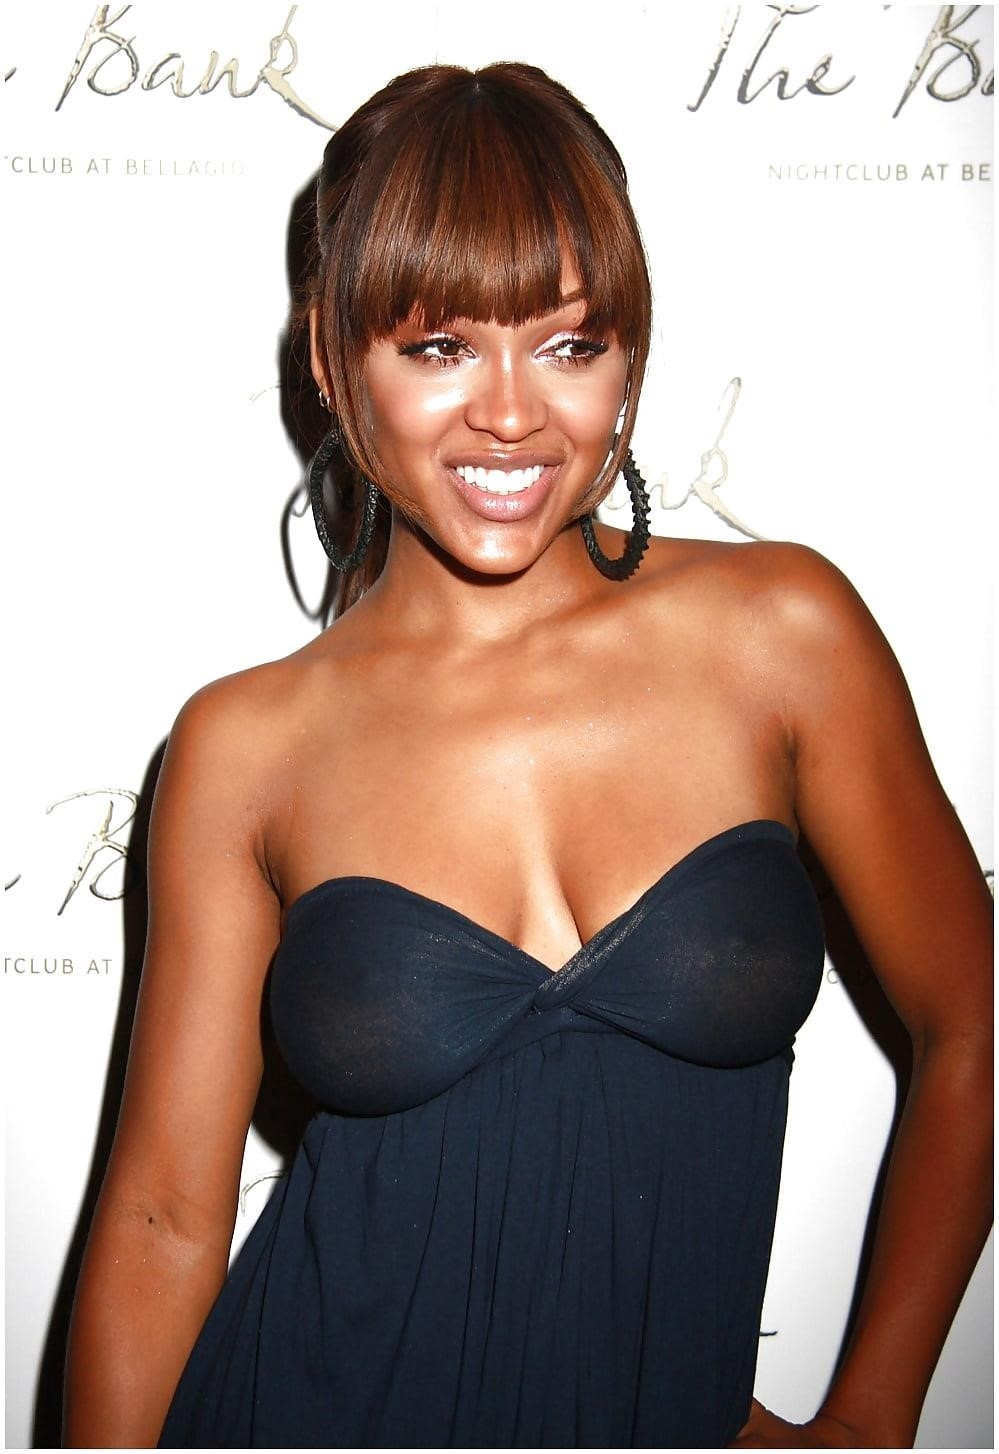 Meagan good nude pictures-3683